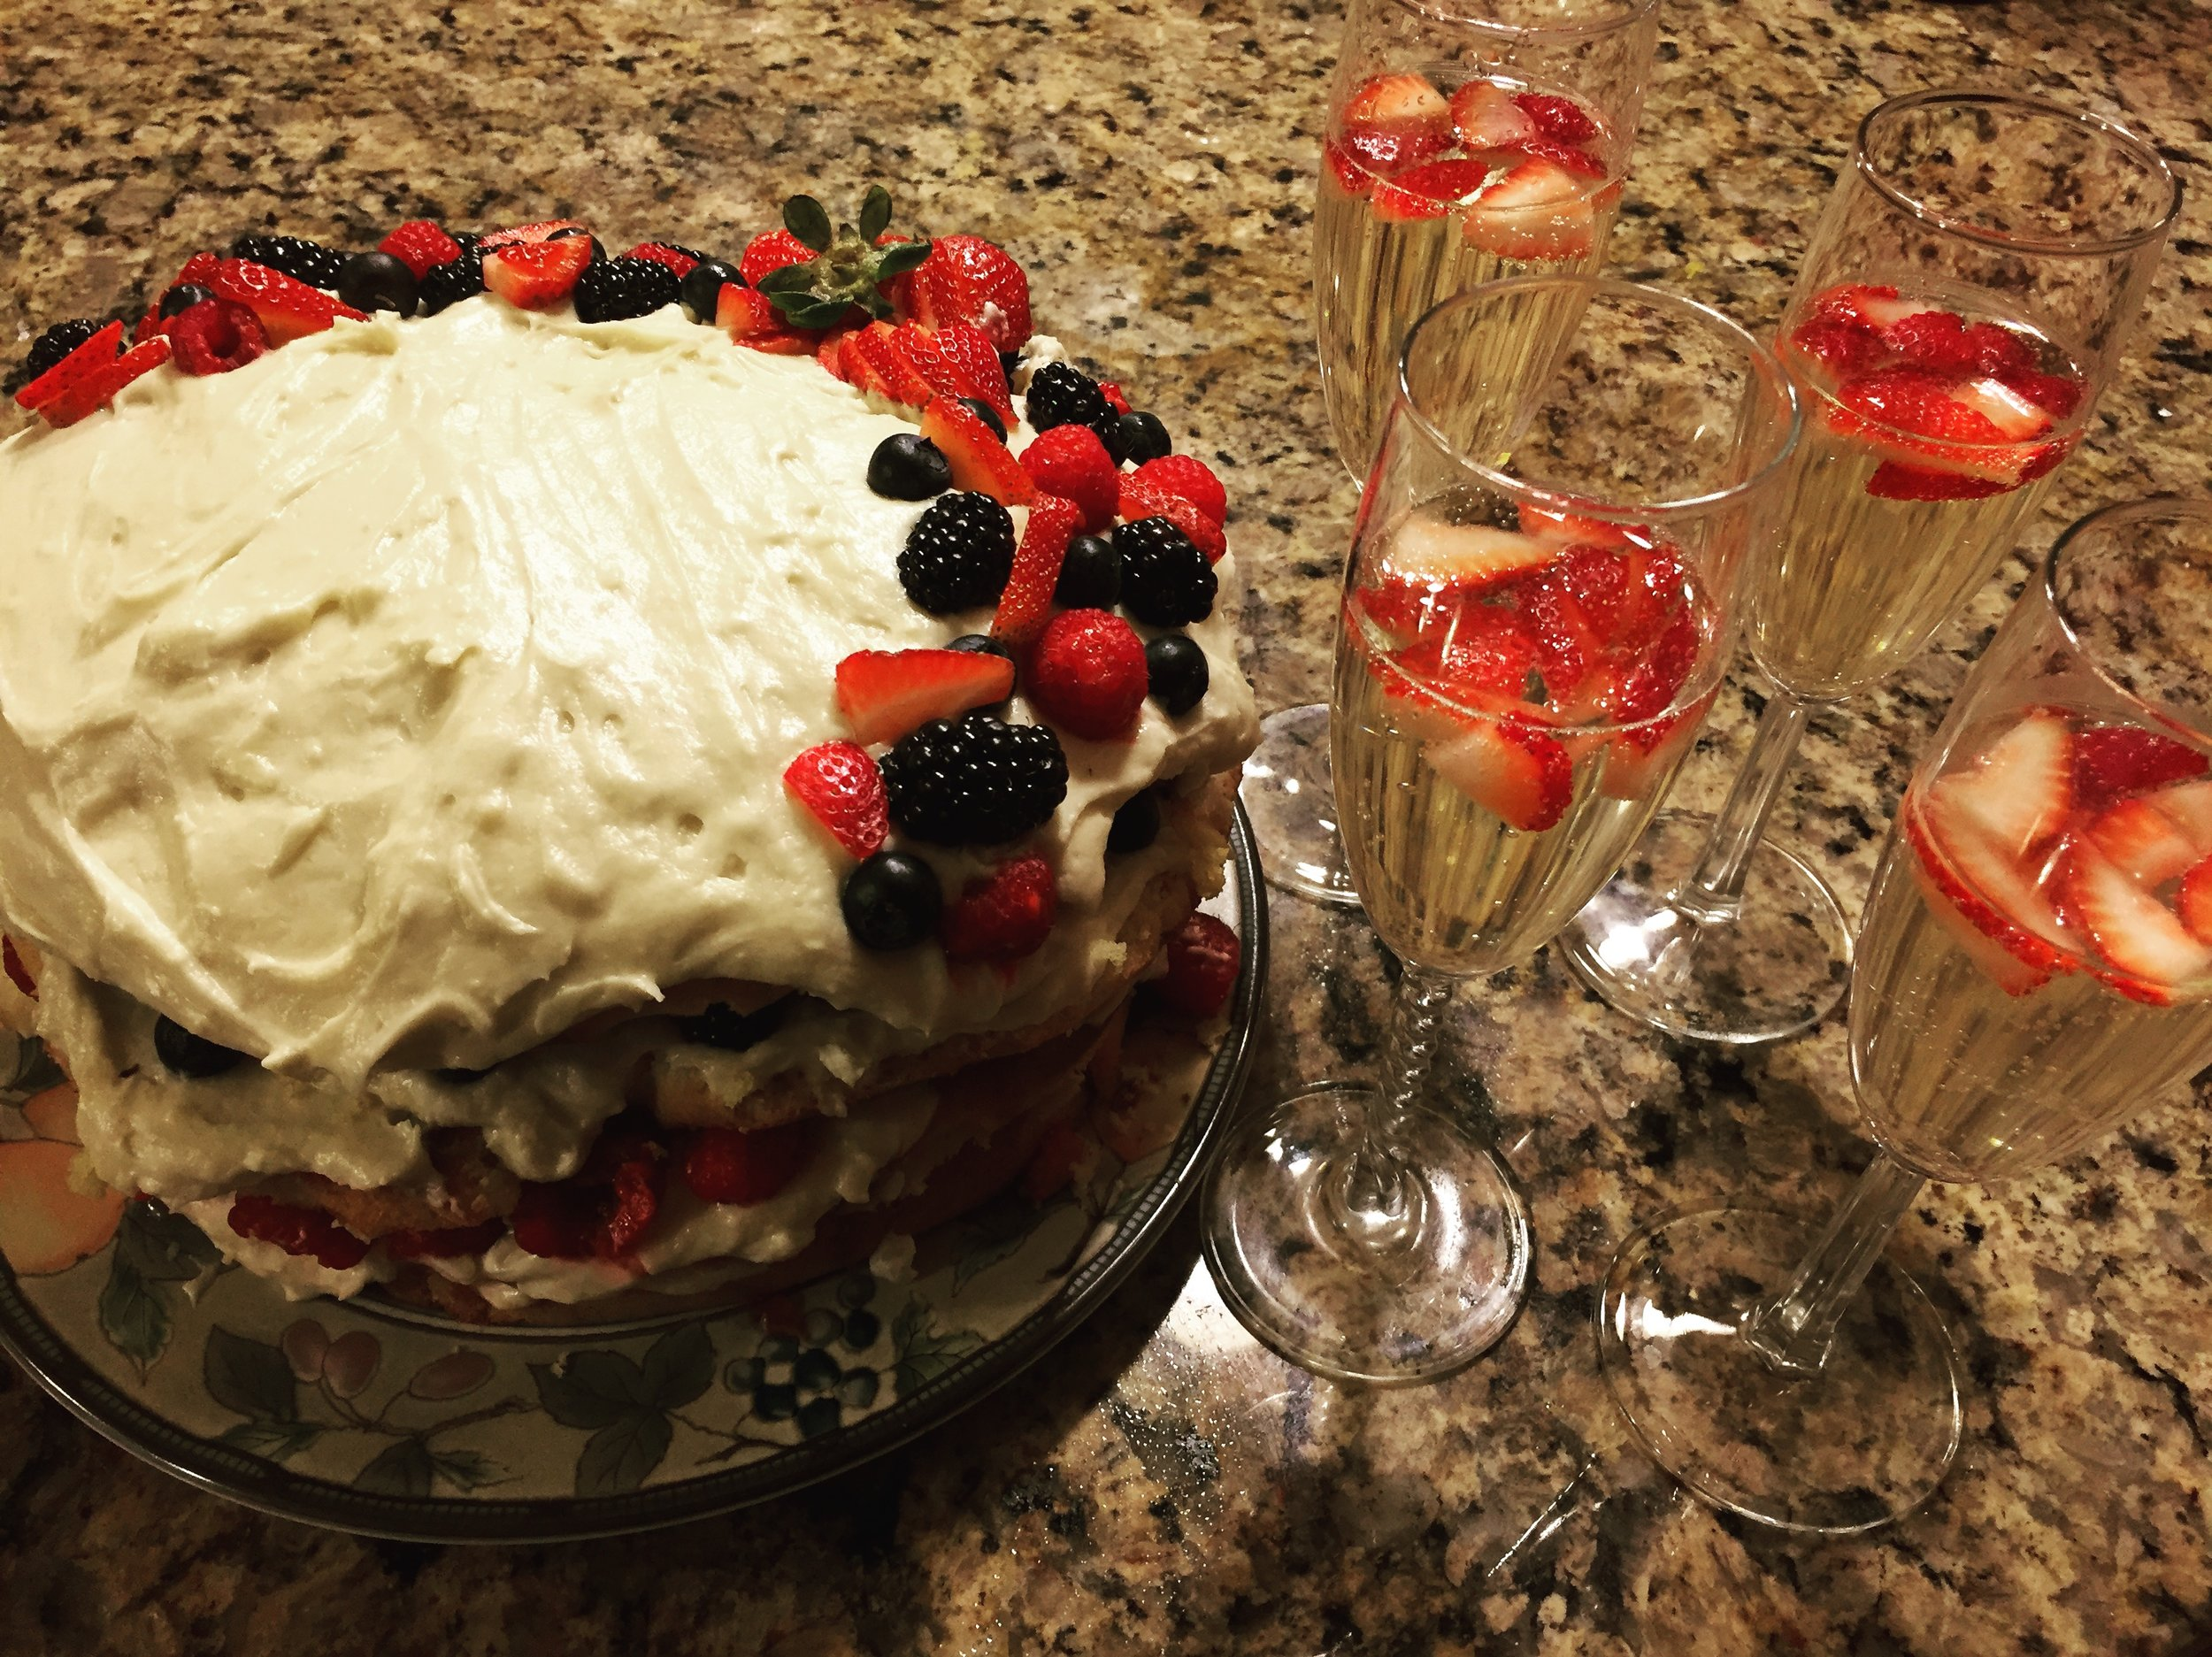 Berry Chantilly Cake with Taranta's Sparkling White Wine